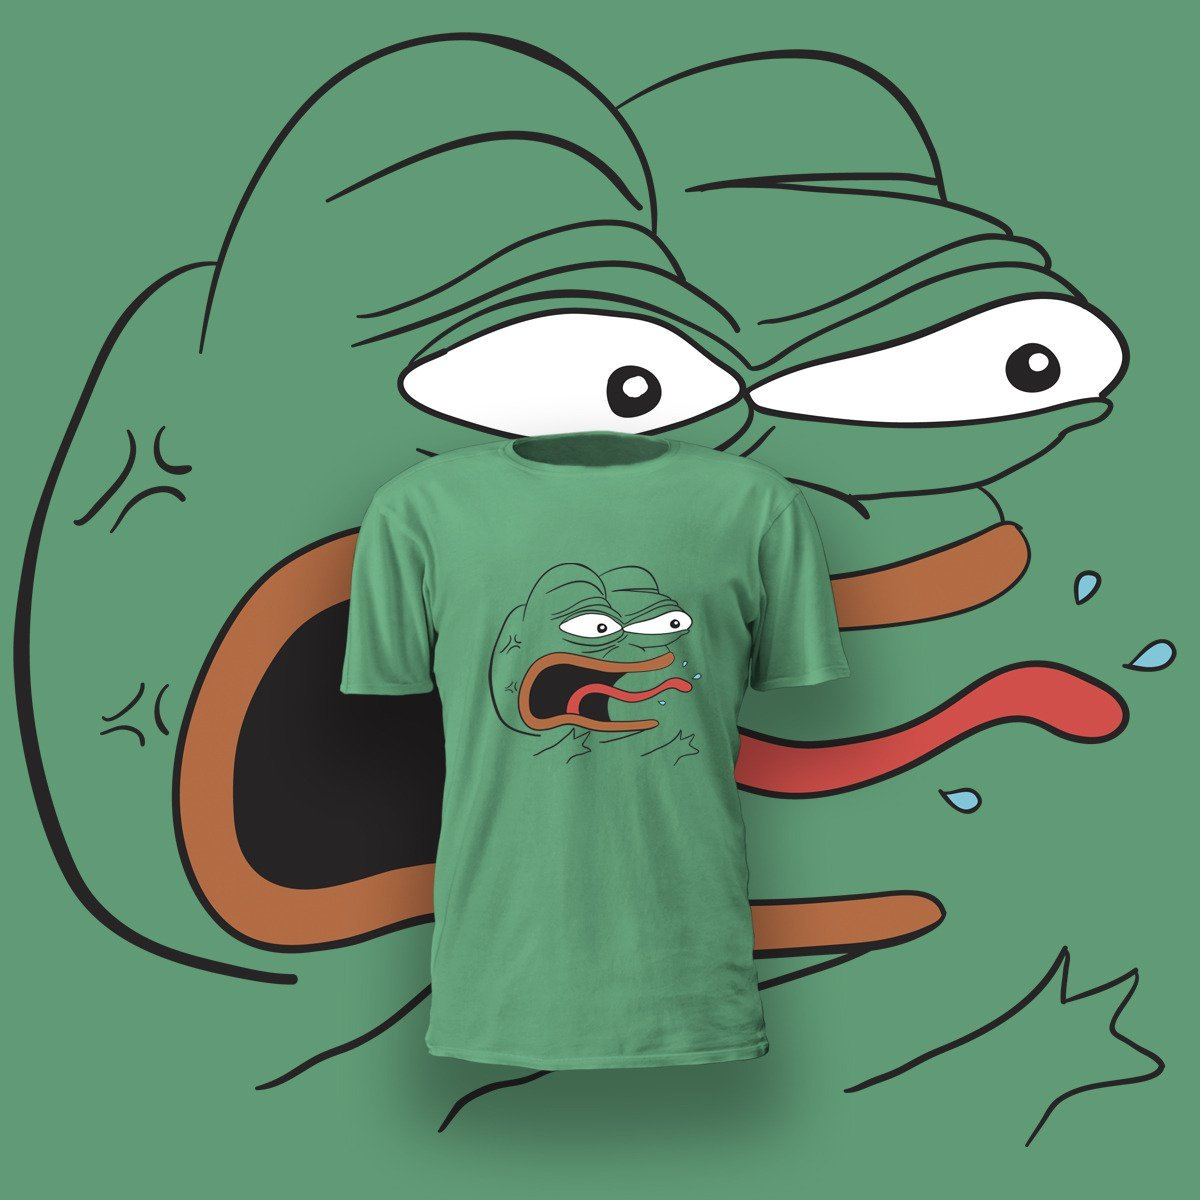 Pepe The Frog As for Pinterest 1200x1200